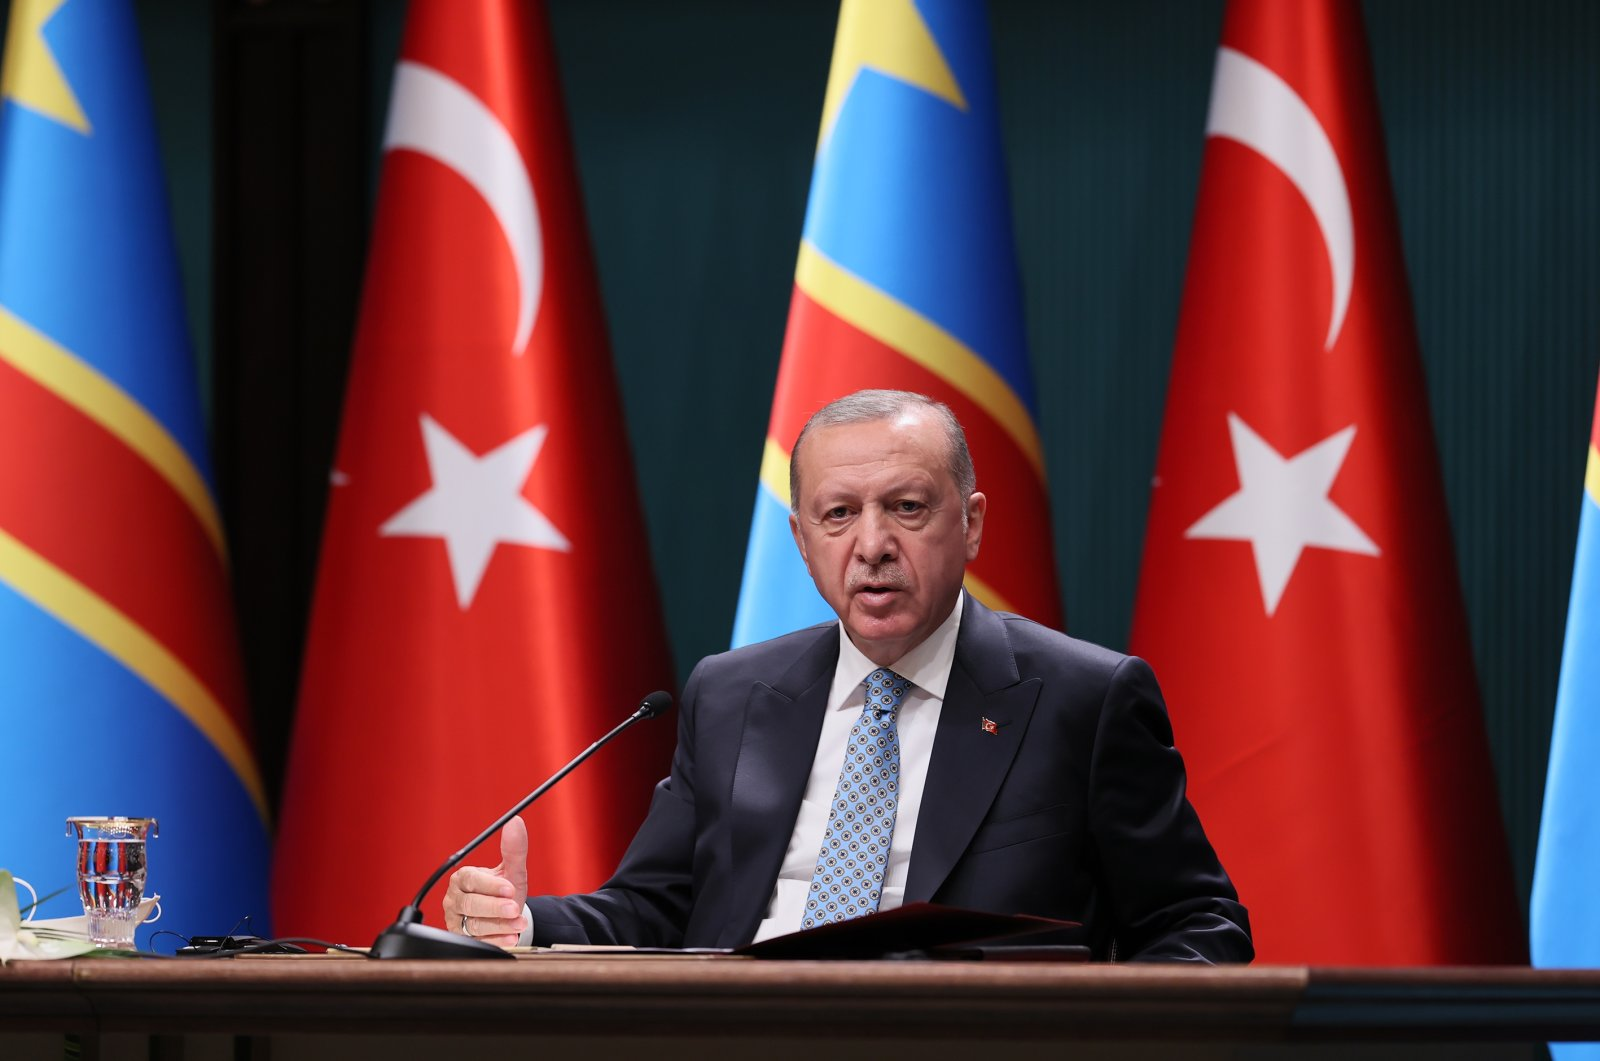 President Erdoğan speaks during thejoint press conference with Felix Tshisekedi, his Democratic Republic of Congo counterpart in the Presidential Complex, Ankara, Turkey, Sept. 7, 2021 (AA Photo)